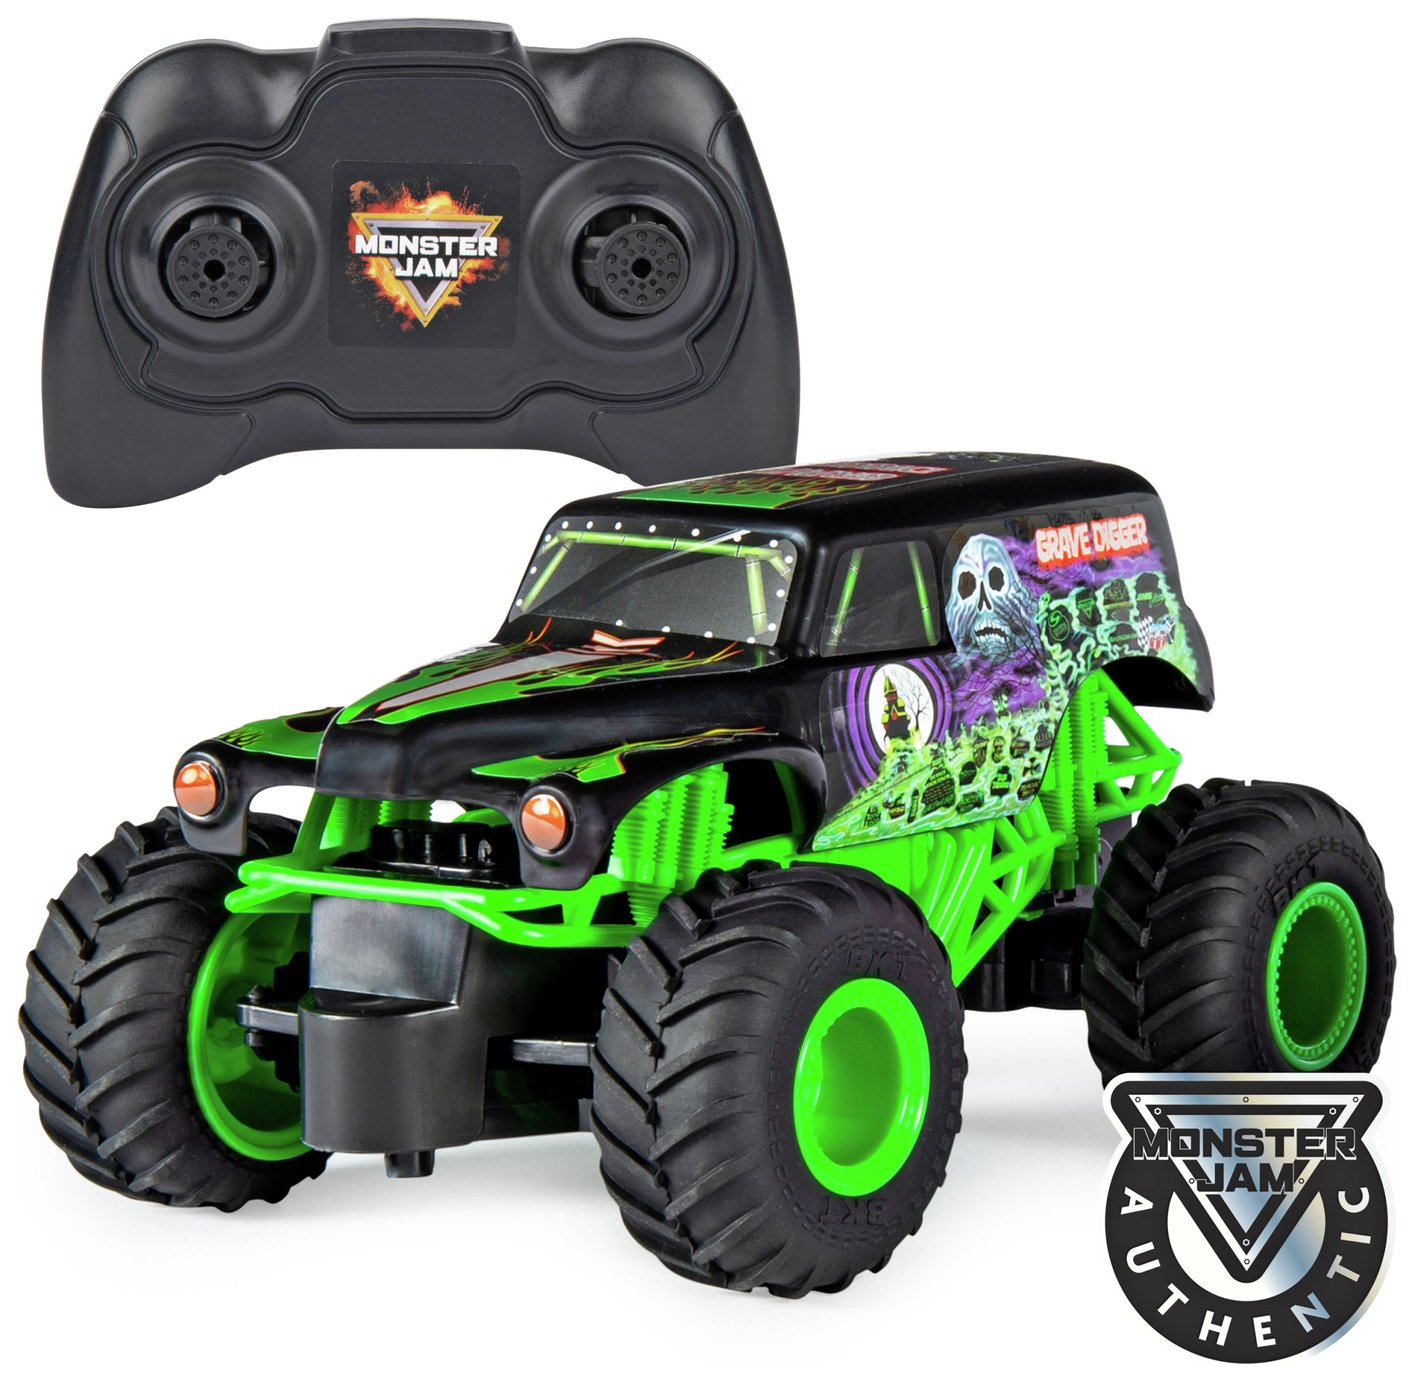 Monster Jam Grave Digger 1:24 Radio Controlled Truck